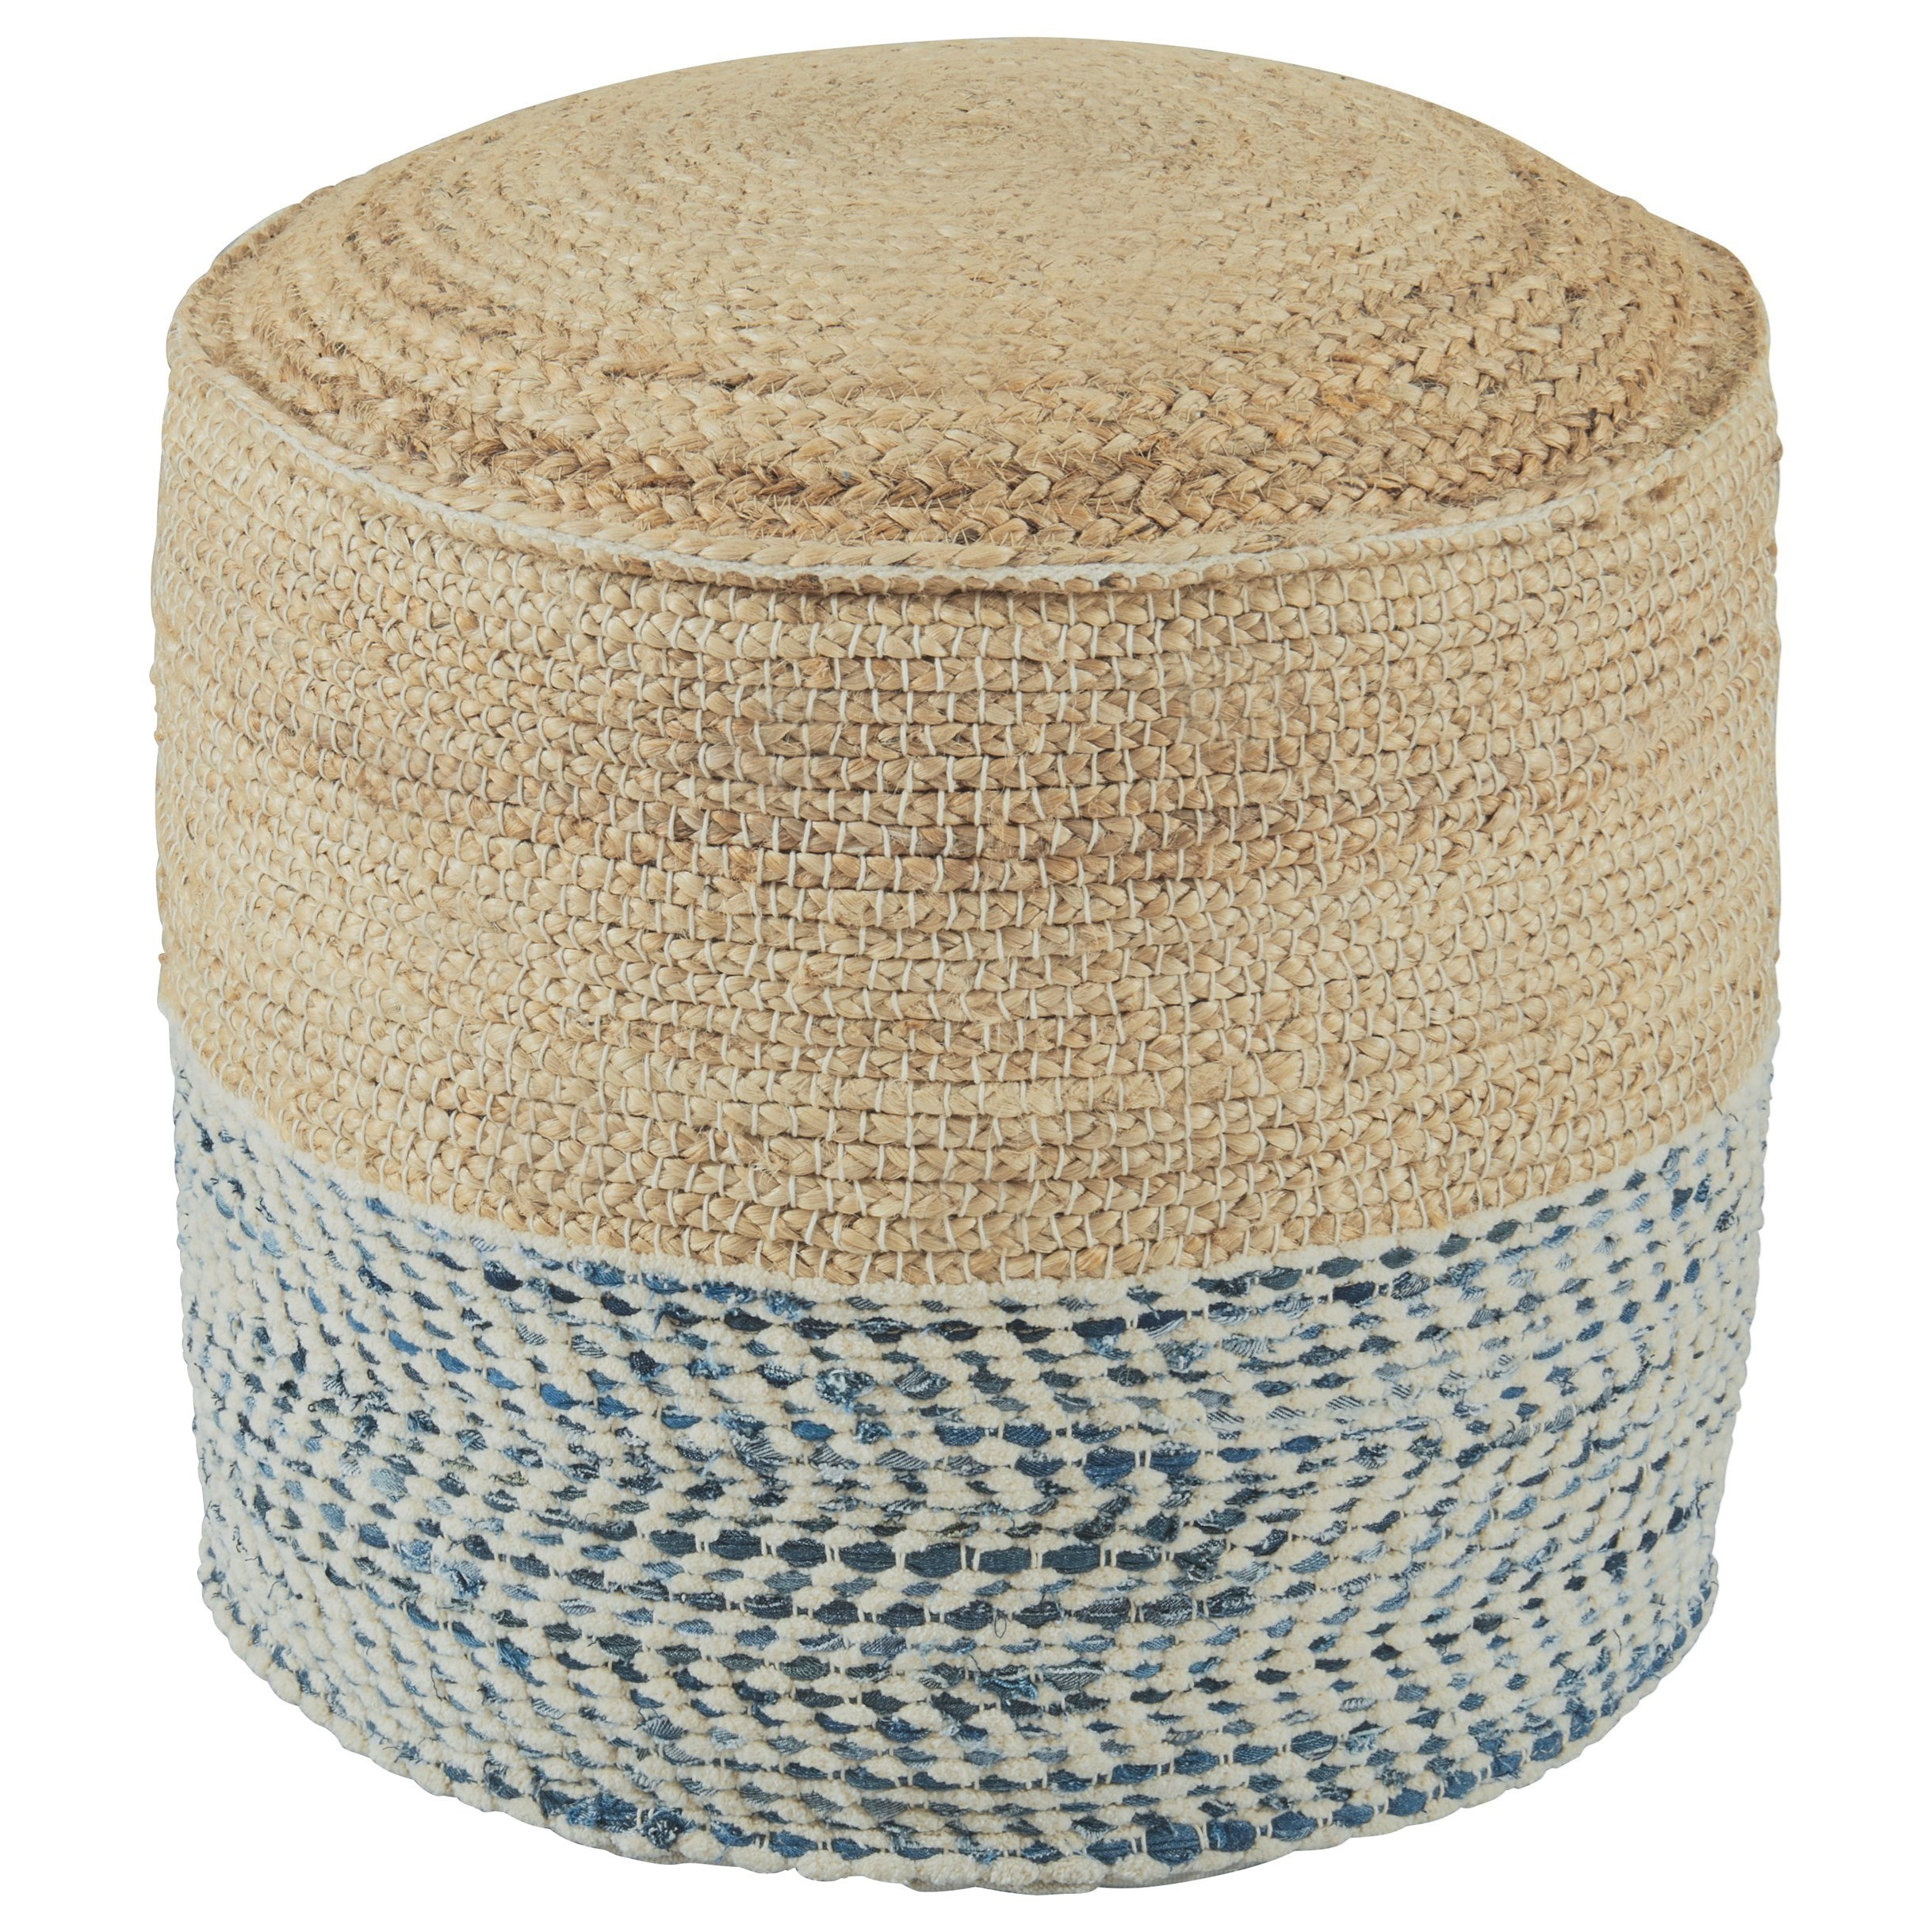 Poufs Matson Natural/Blue Pouf by Signature Design by Ashley at Northeast Factory Direct